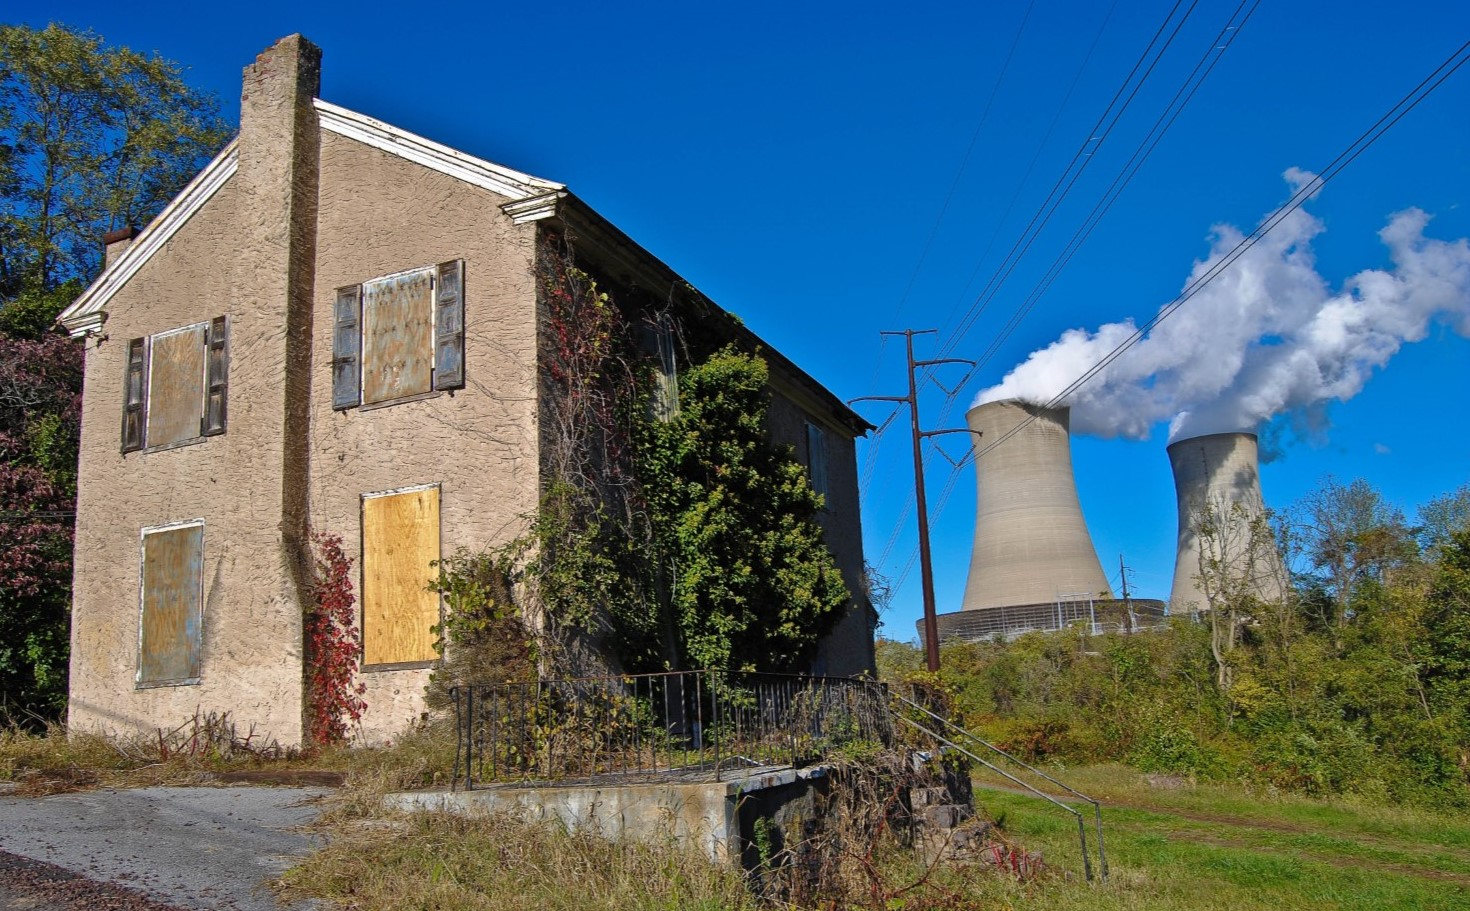 Once-Vibrant Village in East Coventry Township Now a Ghost Town Due to Nuclear Power Plant